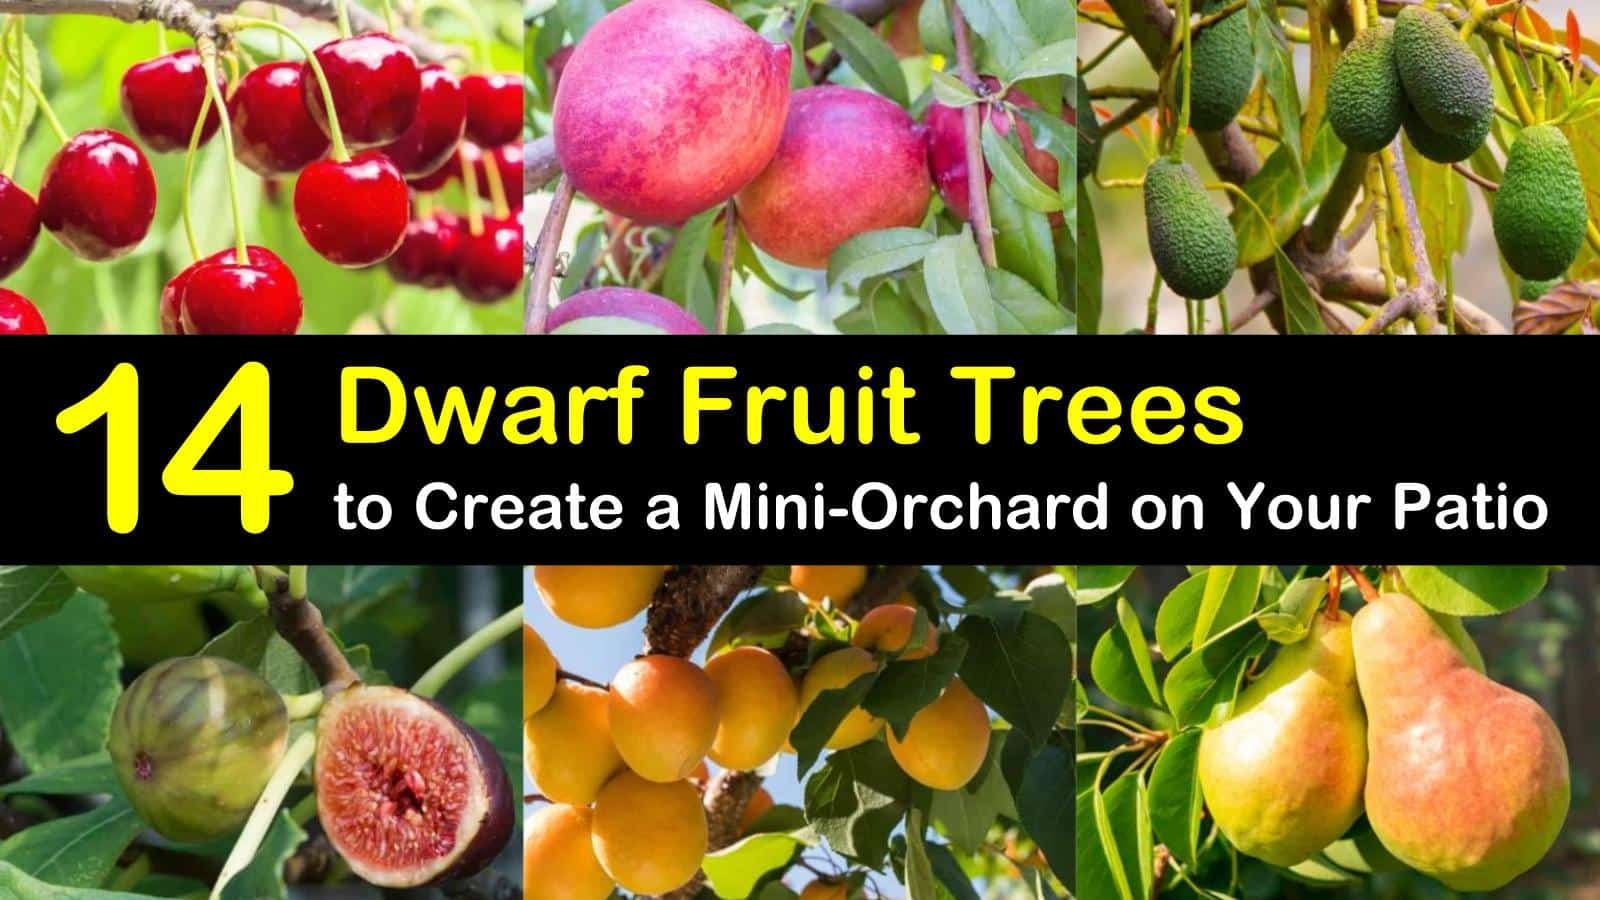 dwarf fruit trees titleimg1